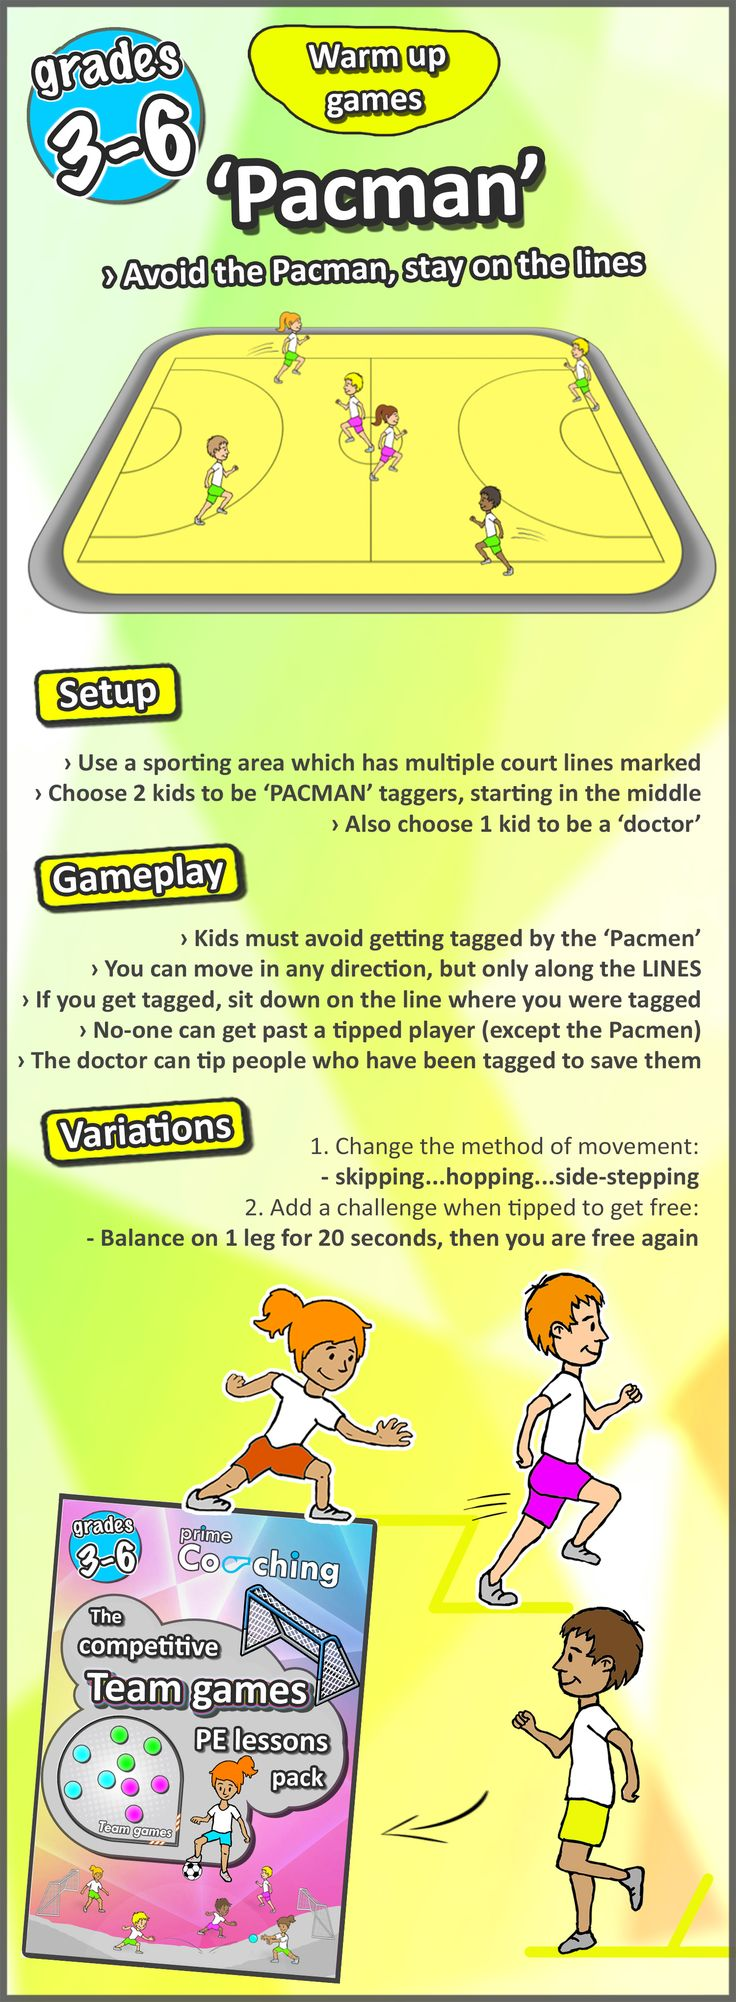 8 great warm up games for your PE lessons - try them out for your sport classes now!